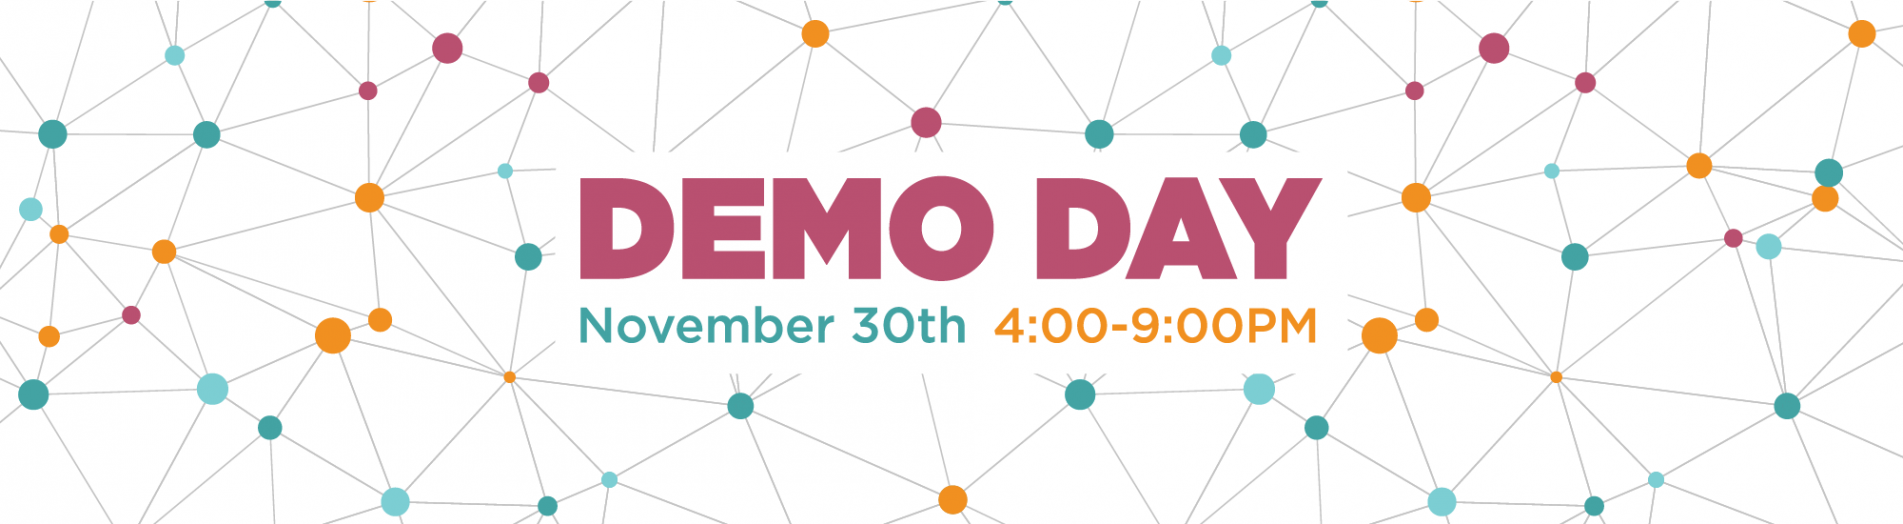 demo_day_banner_Facebook-0001.png